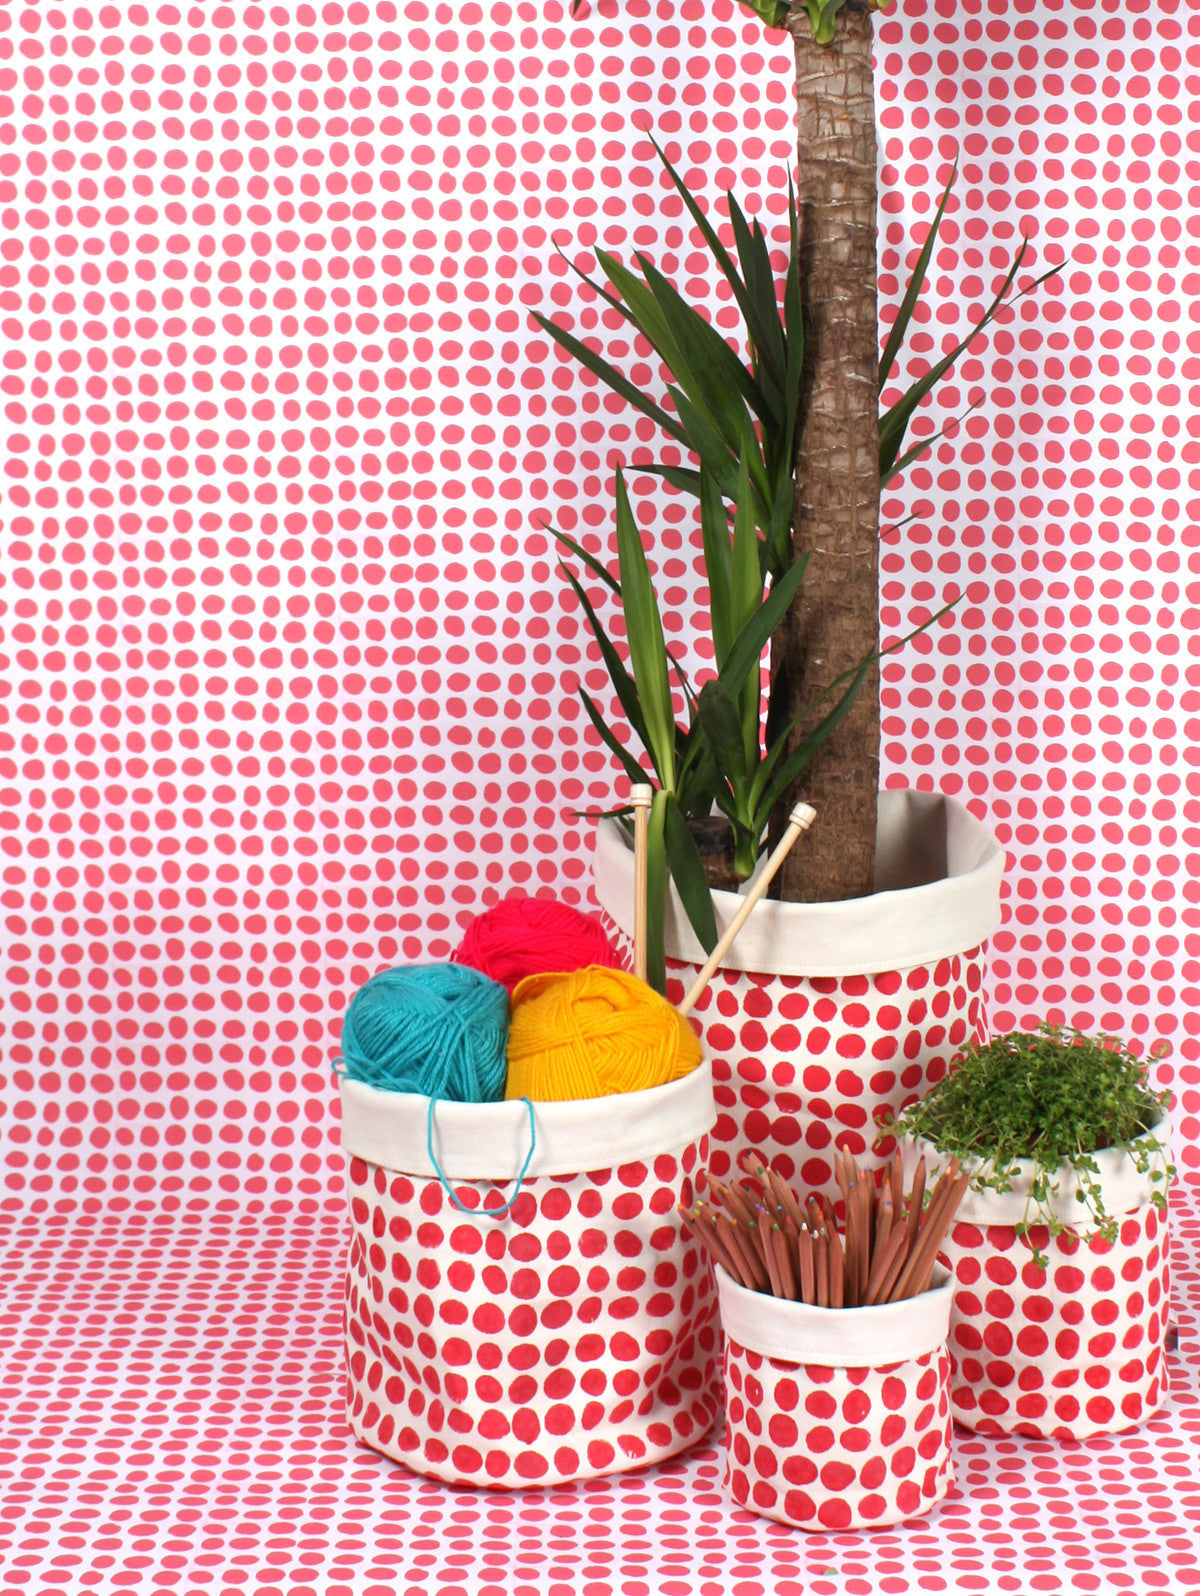 Spot Print Canvas Storage Pots, Hot Pink